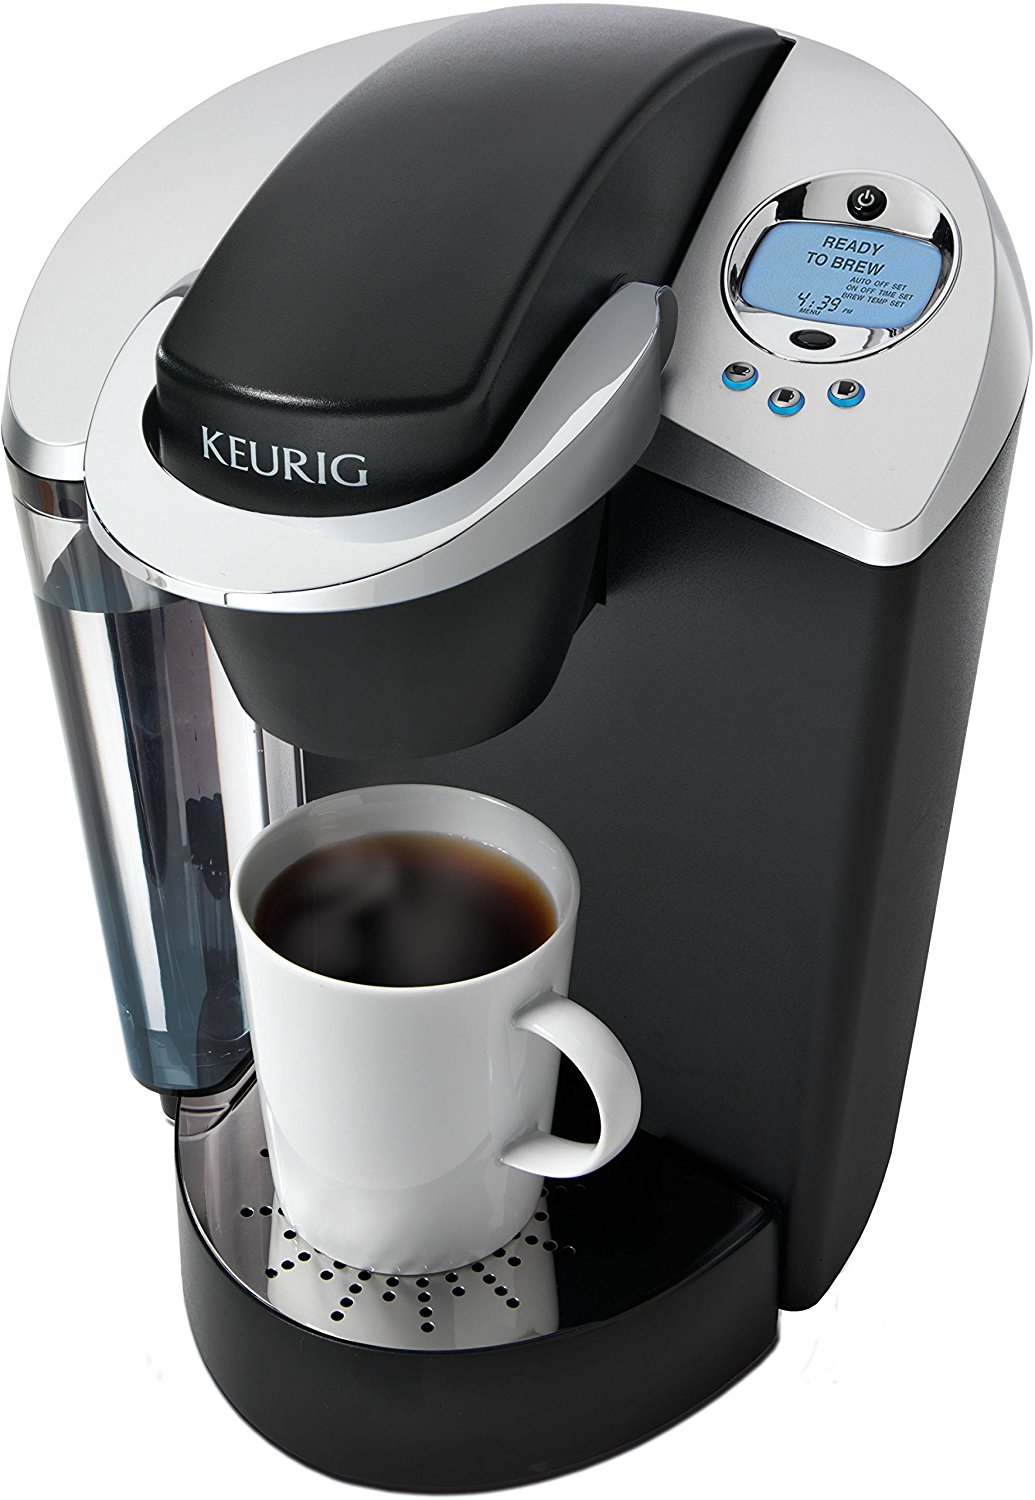 Keurig K65 Special Signature Single-Cup